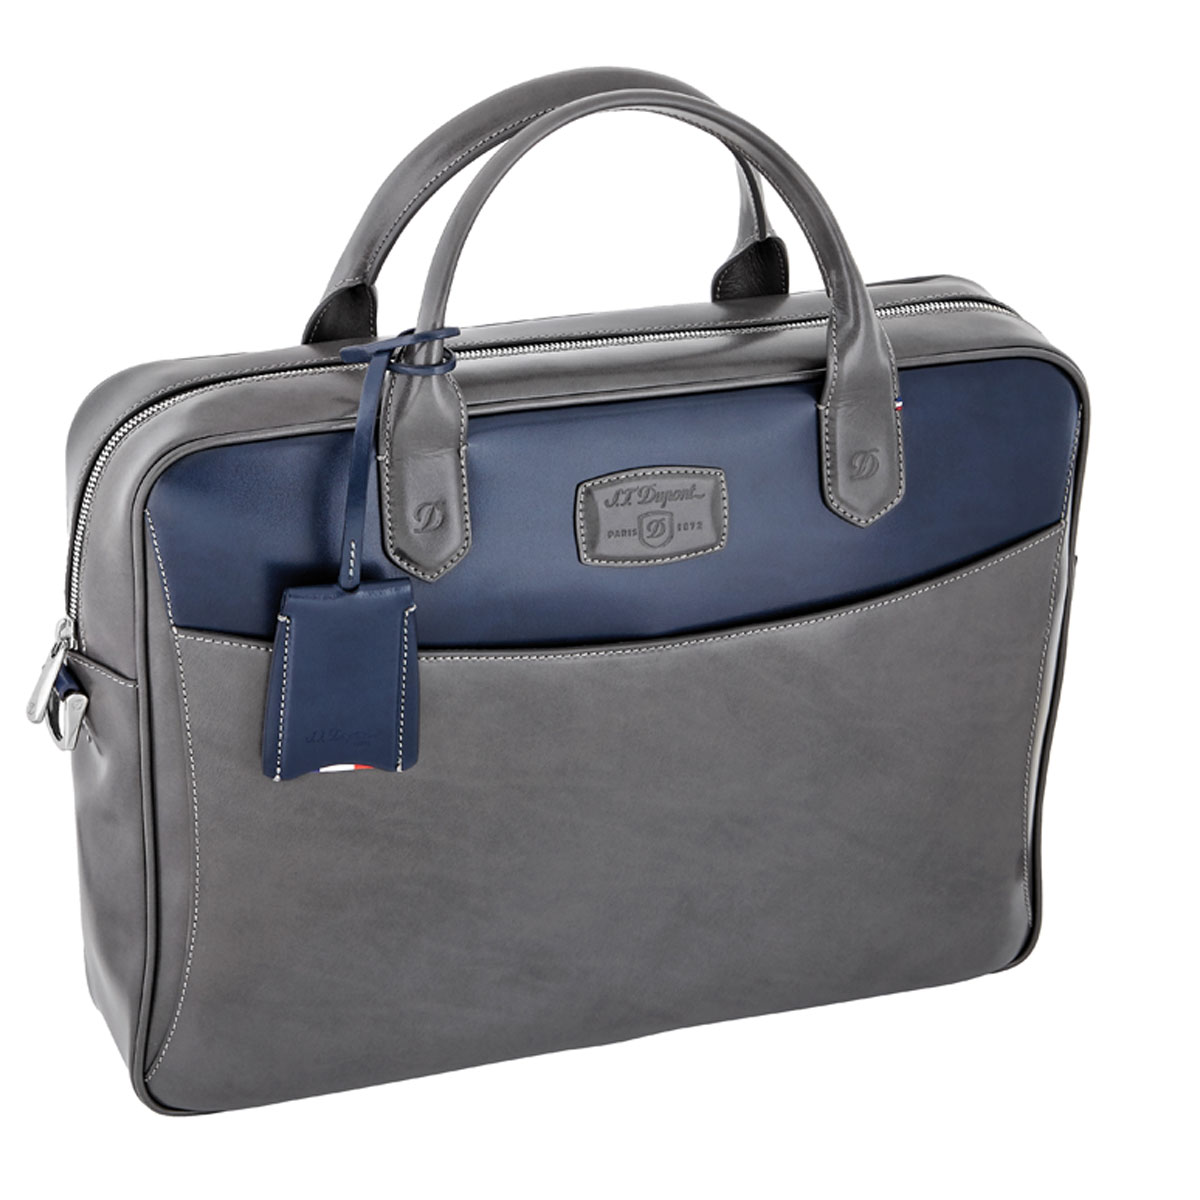 St dupont line d grey blue duotone leather document for Document holder bag